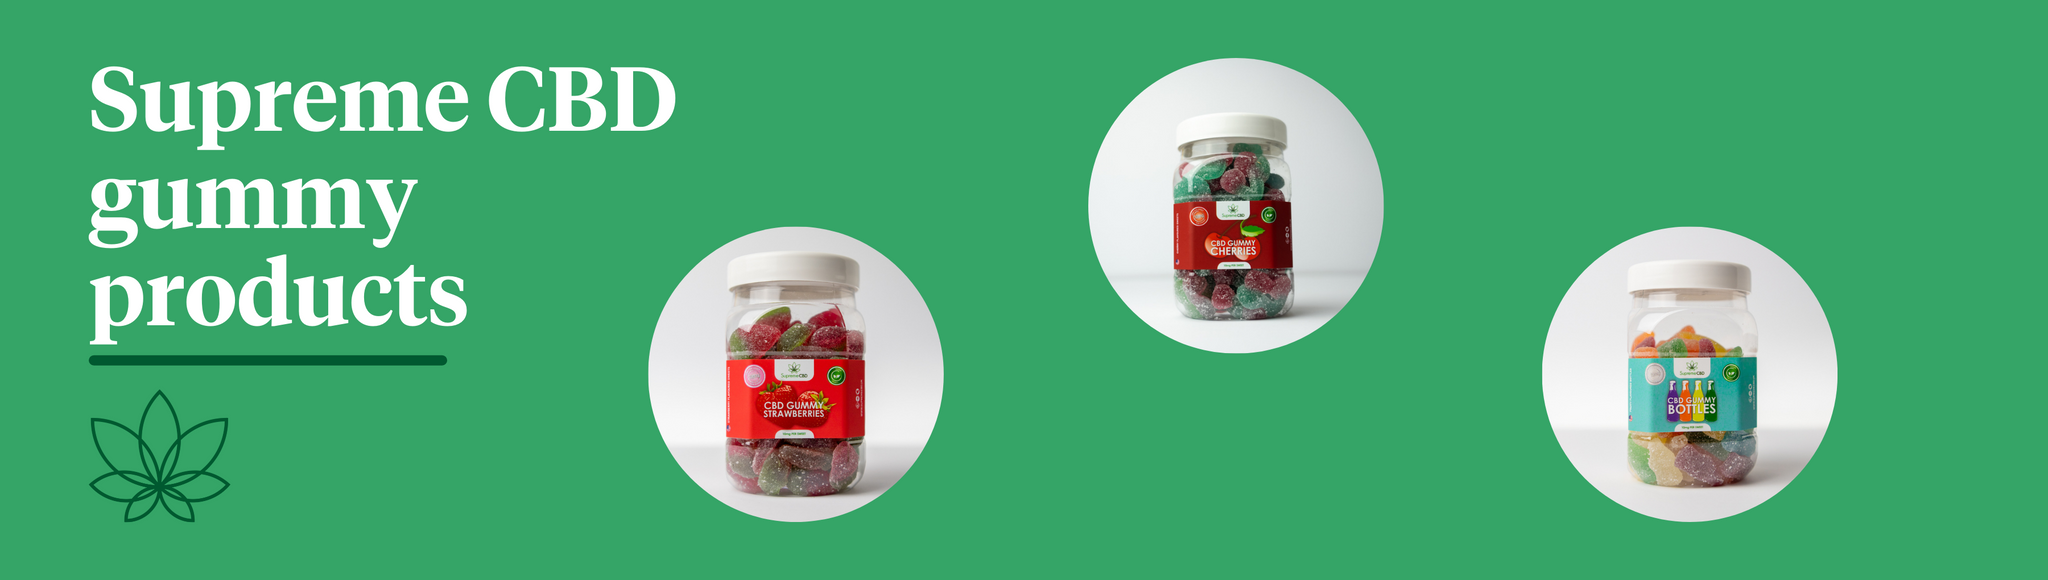 A green background with three CBD edible products showcased, the images being, CBD Strawberries, CBD Cherries and CBD Cola Bottles.